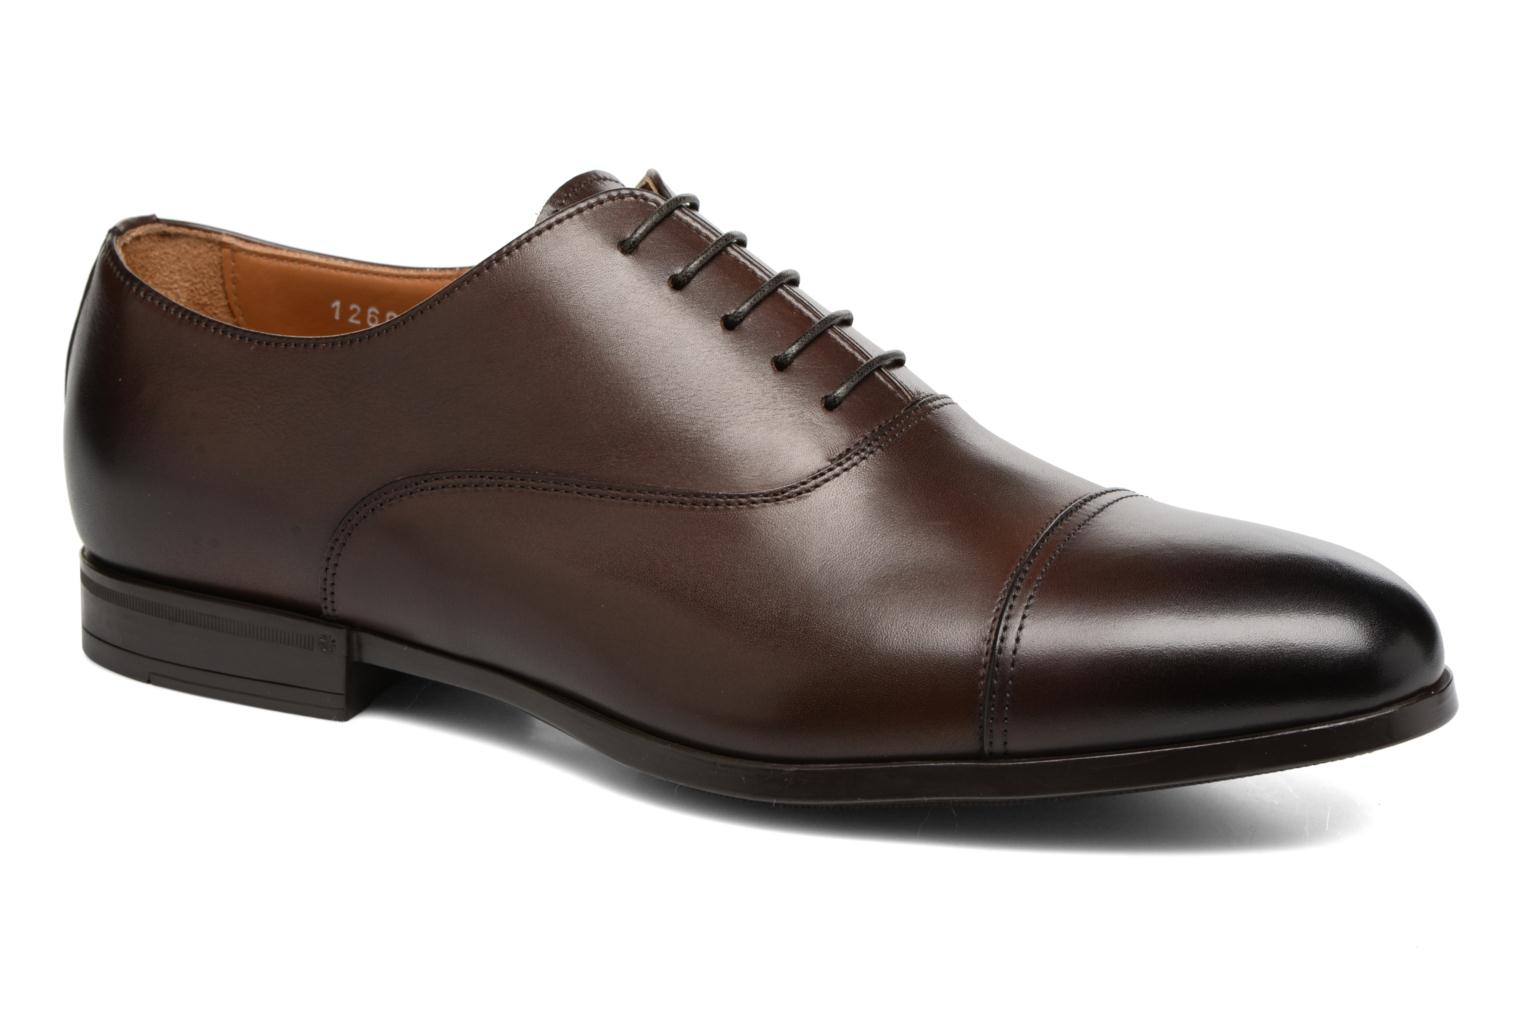 Marques Chaussure luxe homme Doucal's homme SEBASTIANO OSLO Prince Ebano